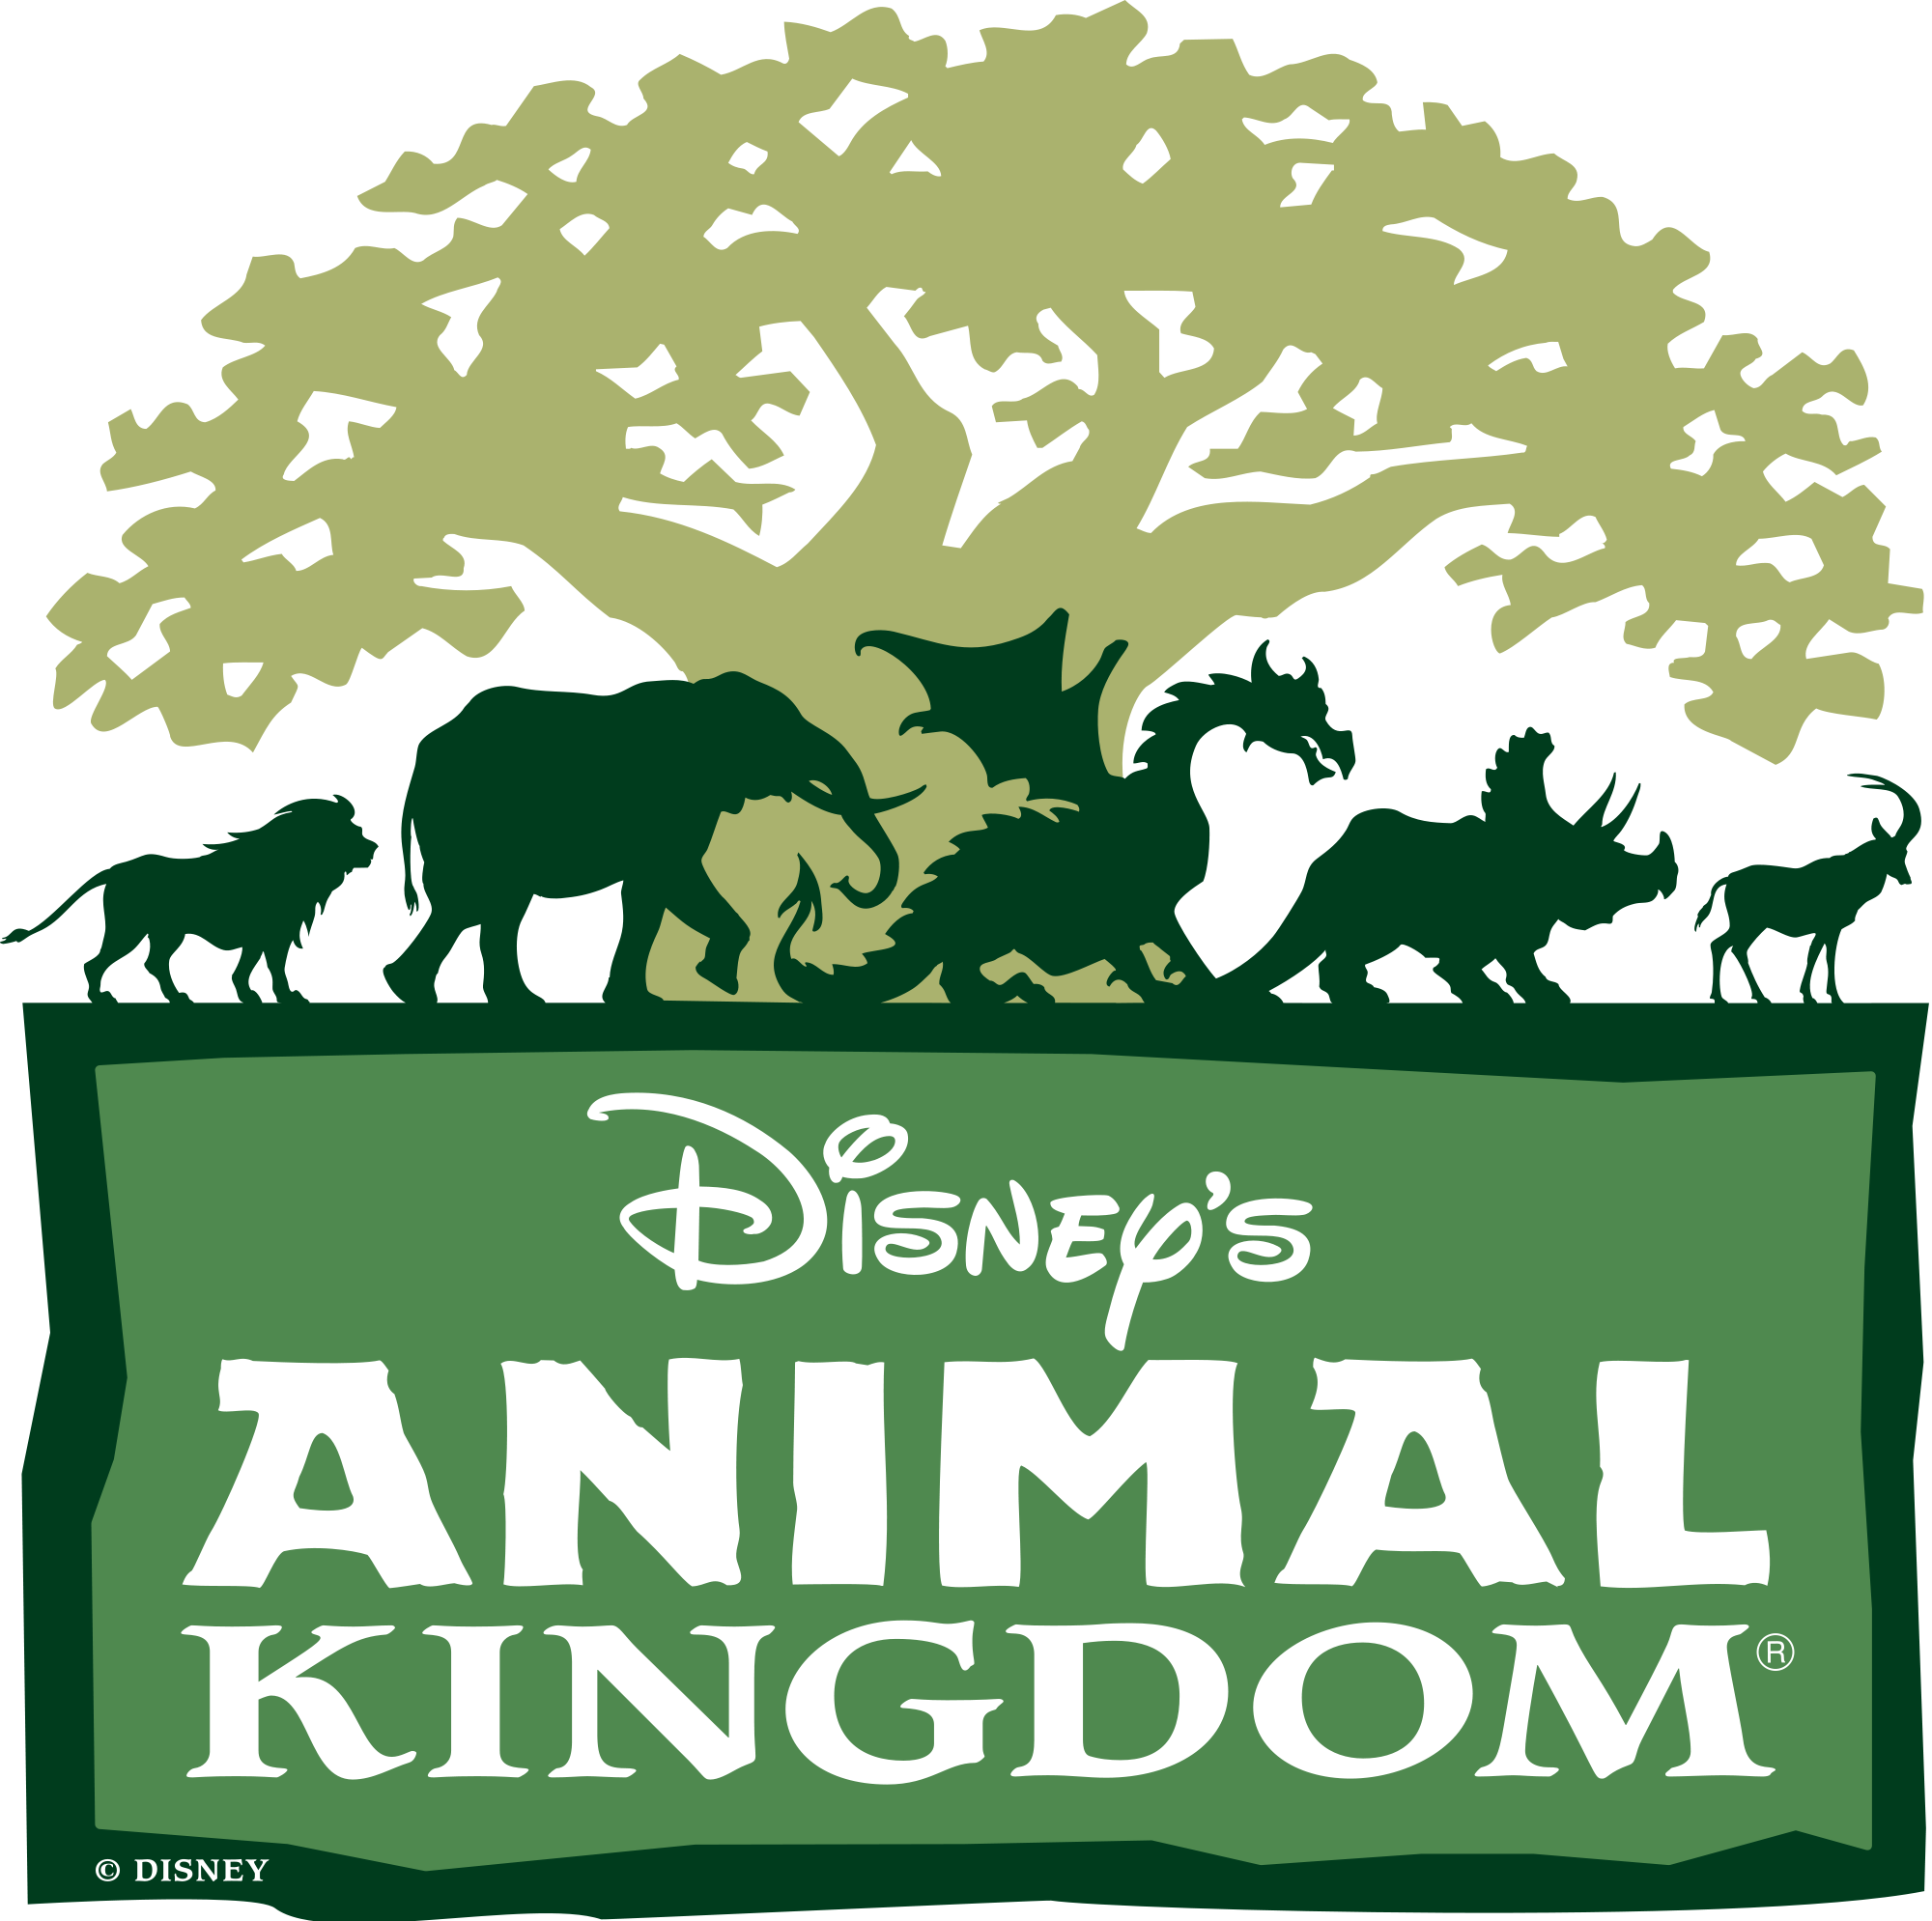 Disney&#39;s Animal Kingdom logo